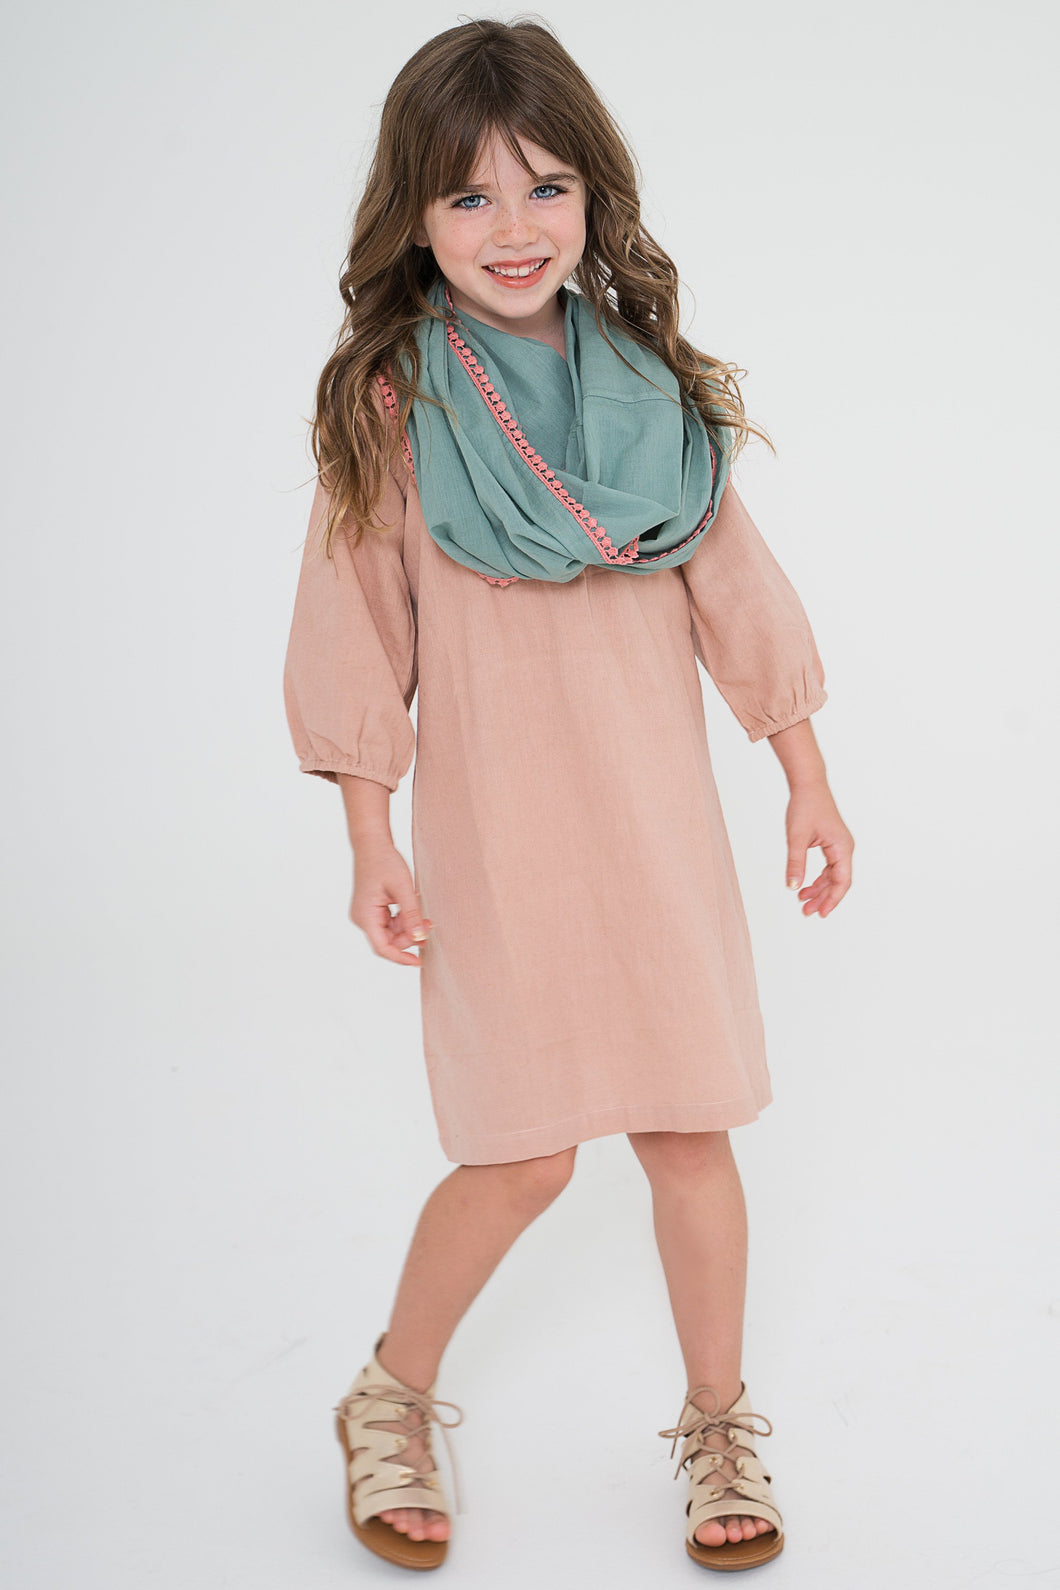 Blush Dress With Teal Infinity Scarf 2-pc. Set - Kids Clothing, Dress - Girls Dress, Yo Baby Online - Yo Baby